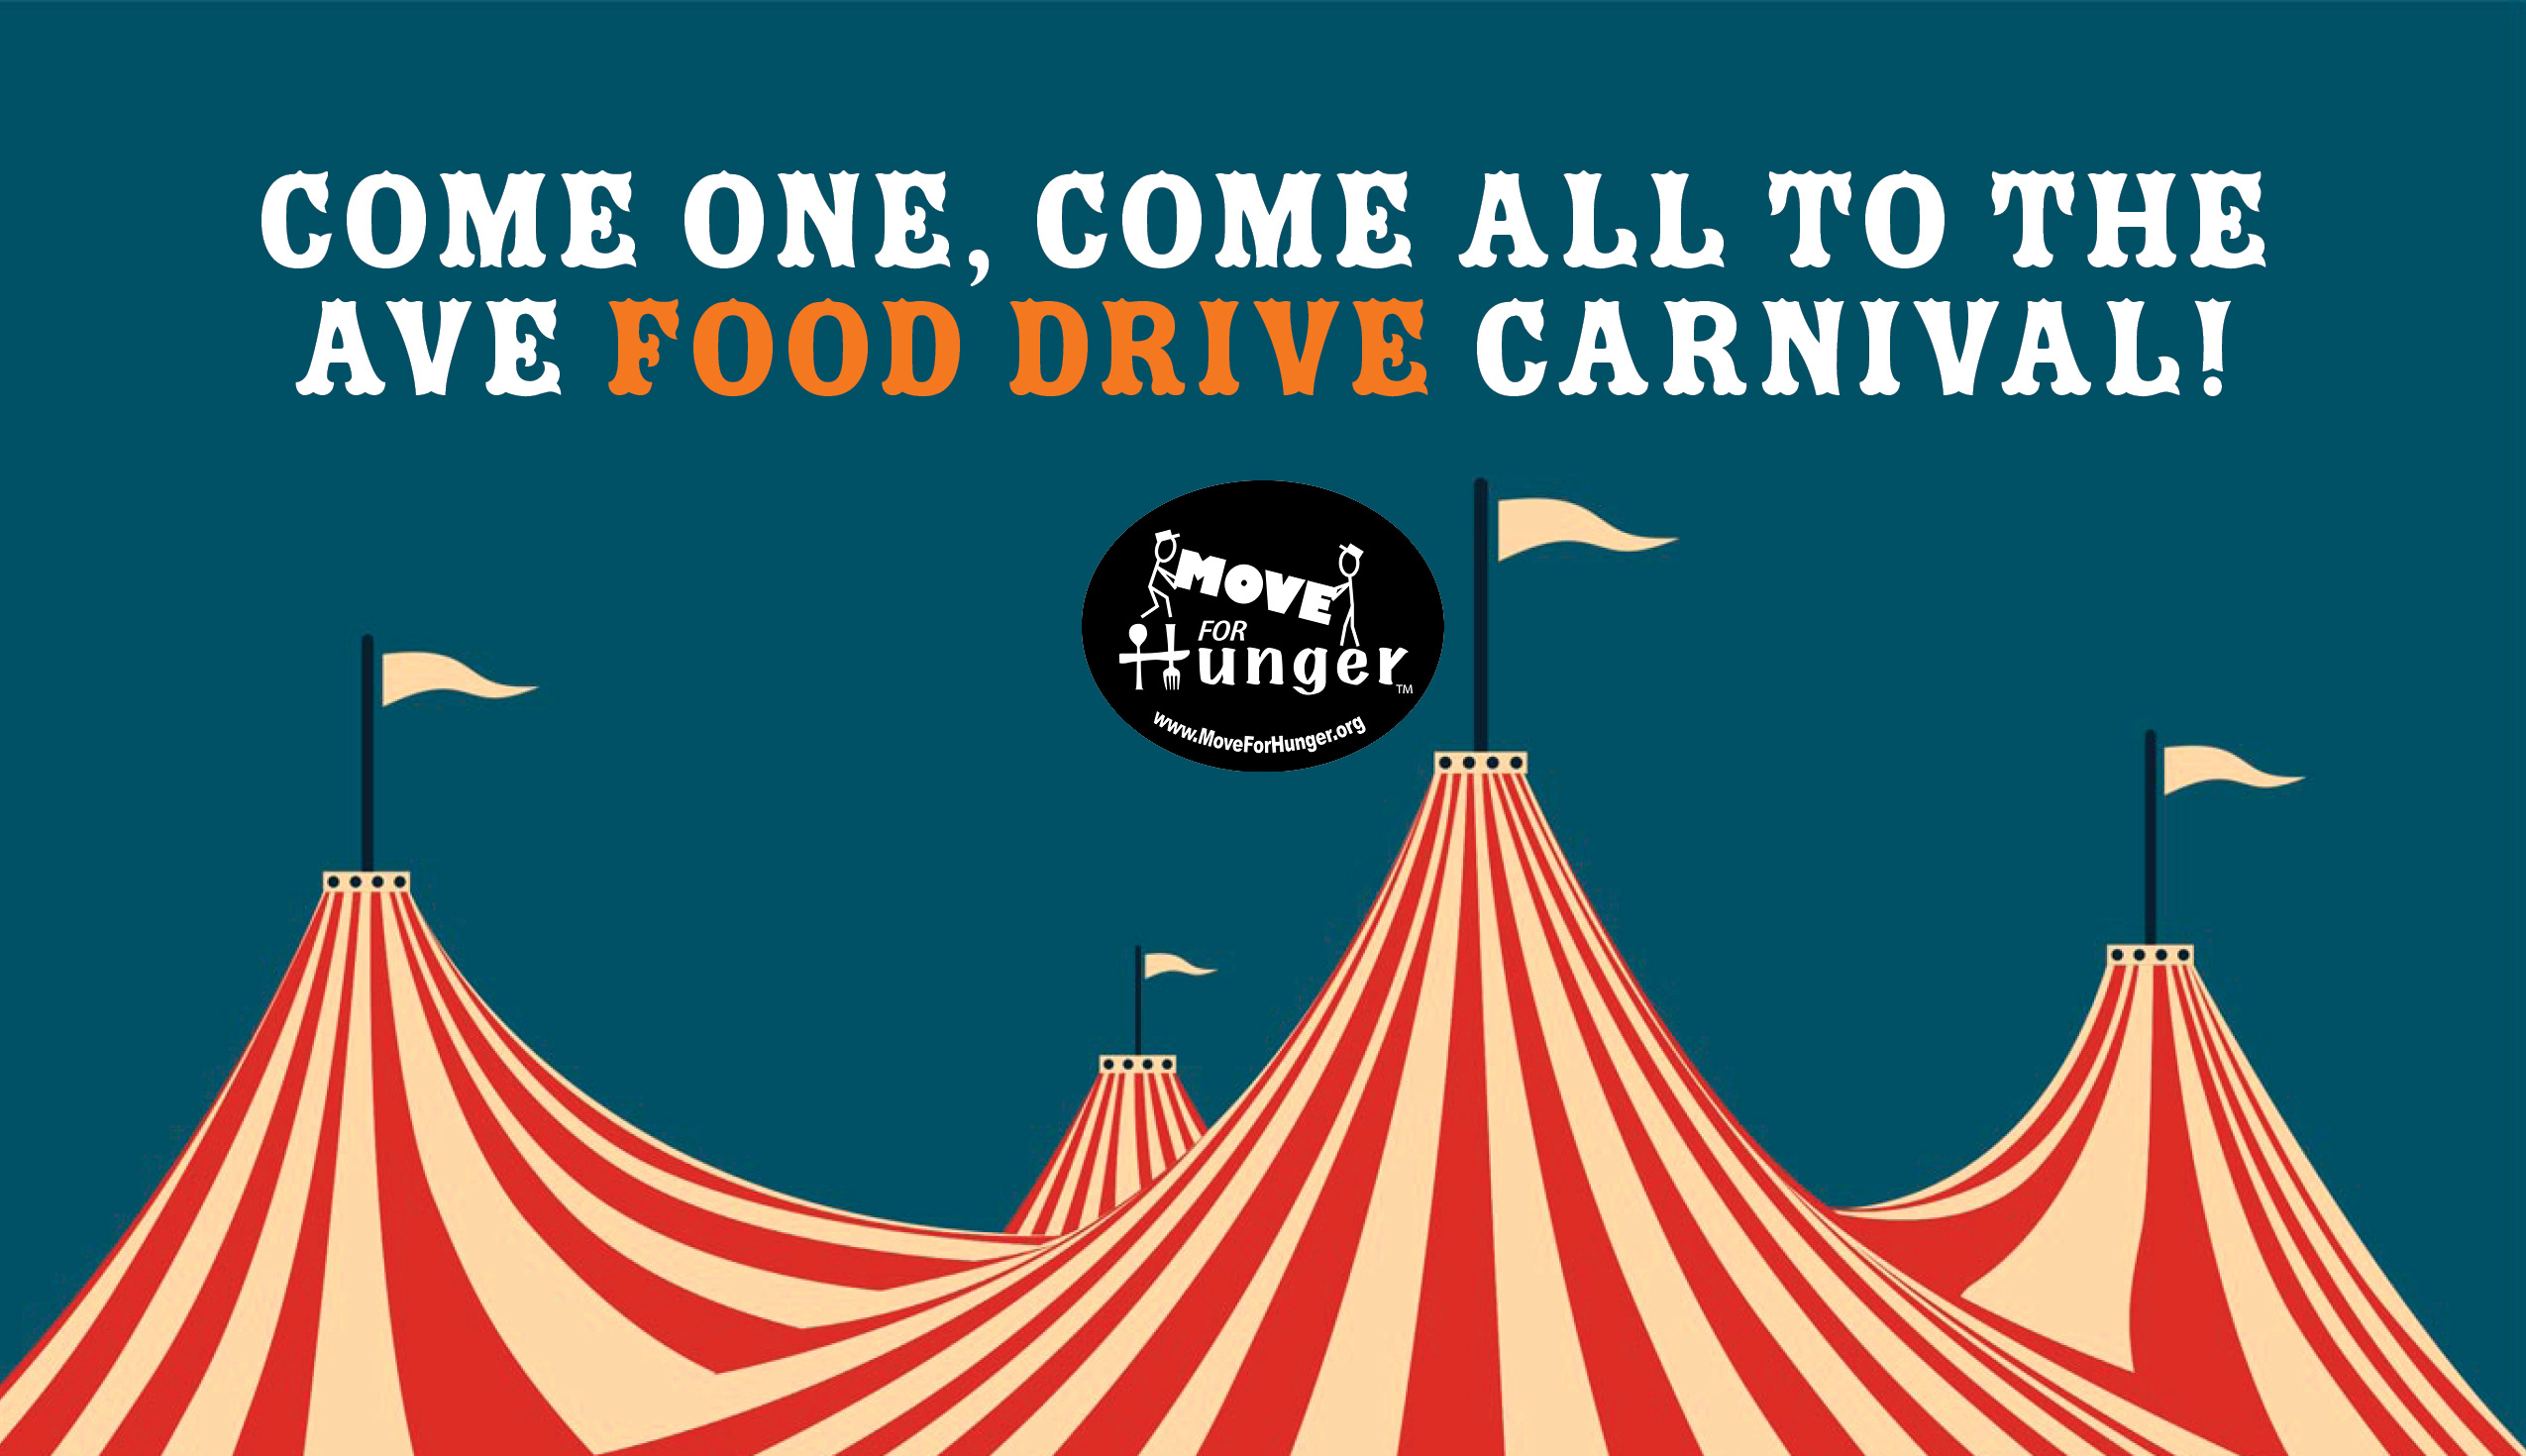 move for hunger flyer